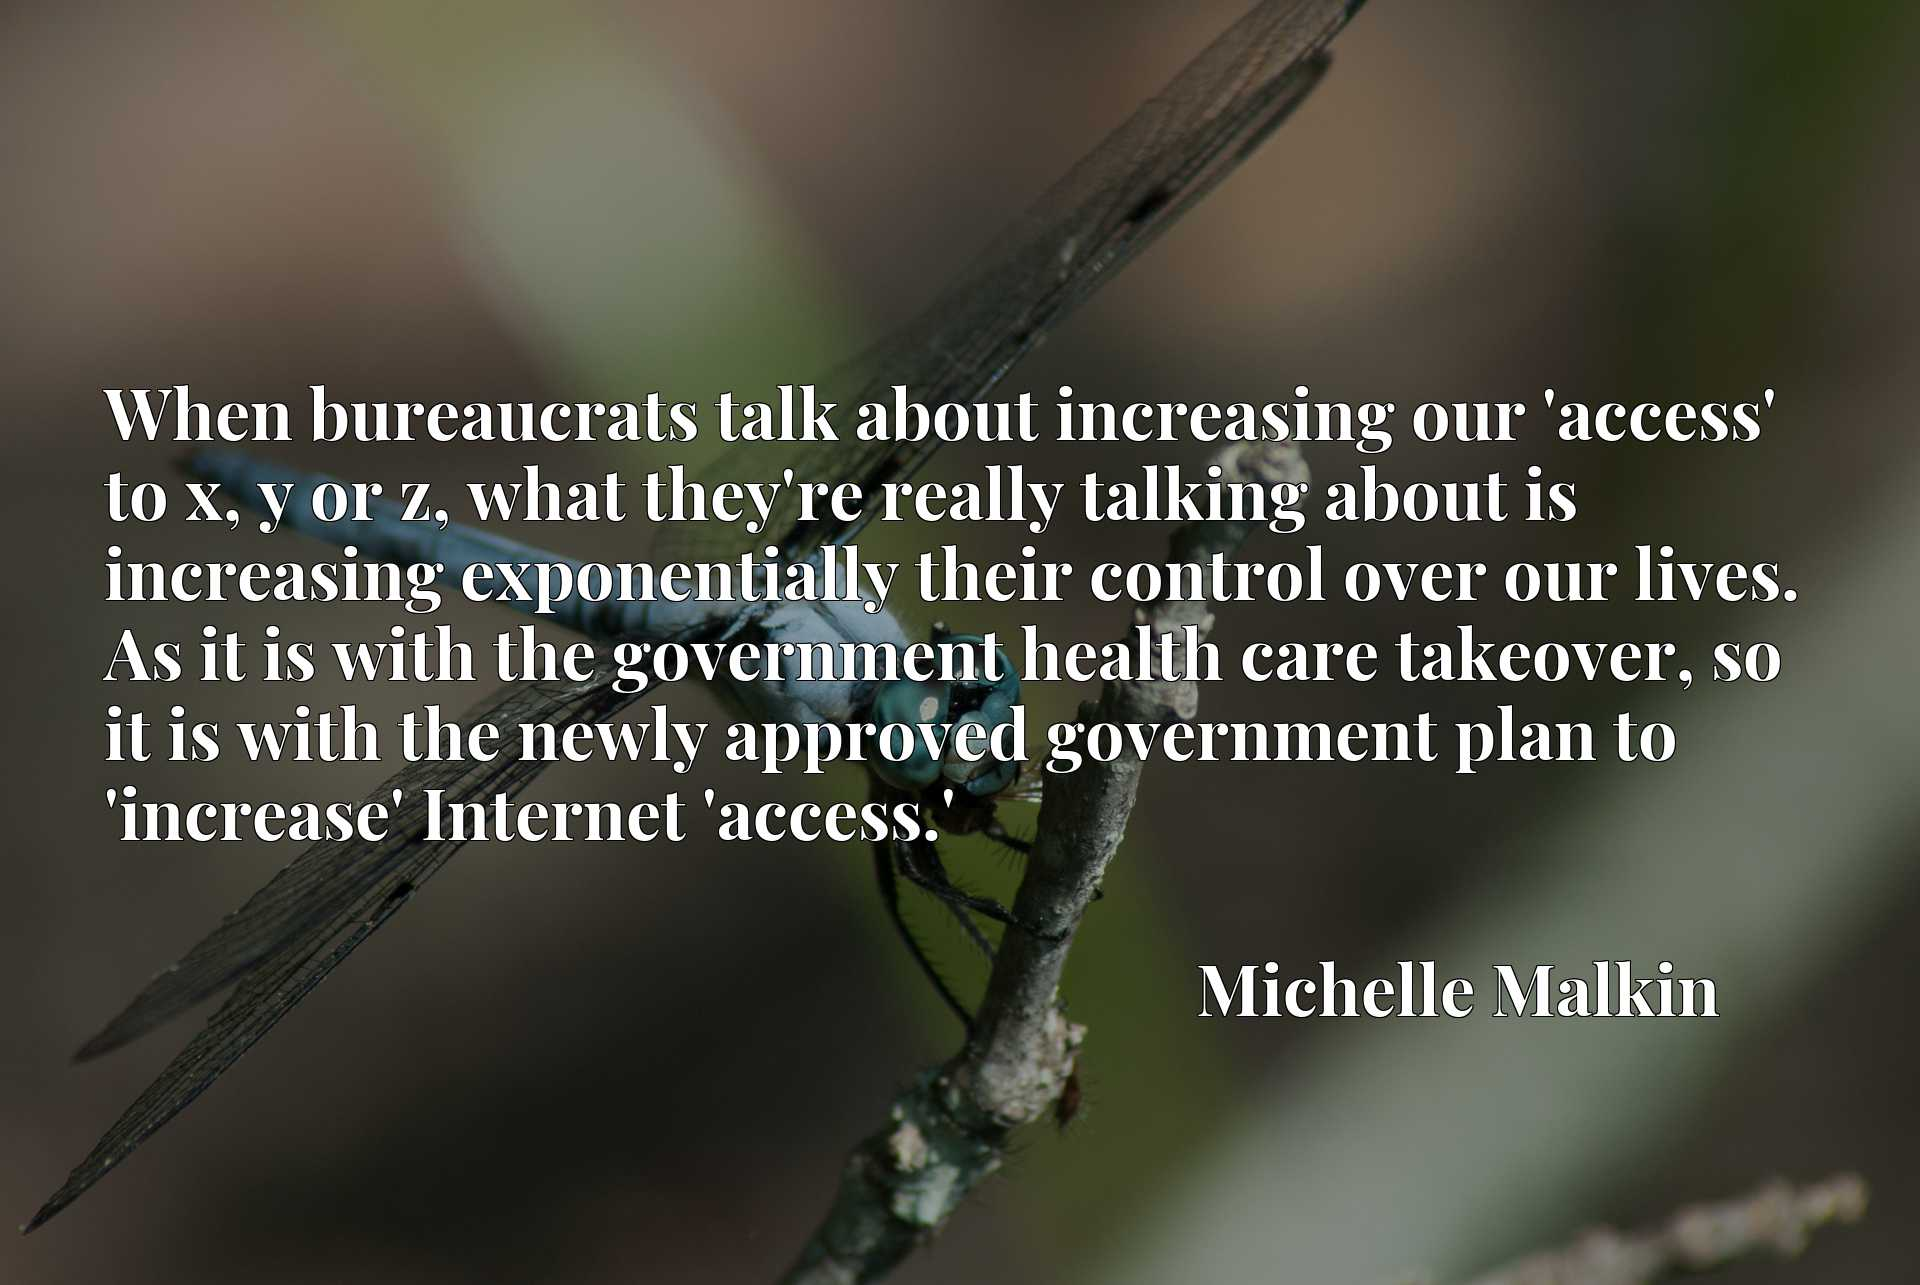 When bureaucrats talk about increasing our 'access' to x, y or z, what they're really talking about is increasing exponentially their control over our lives. As it is with the government health care takeover, so it is with the newly approved government plan to 'increase' Internet 'access.'